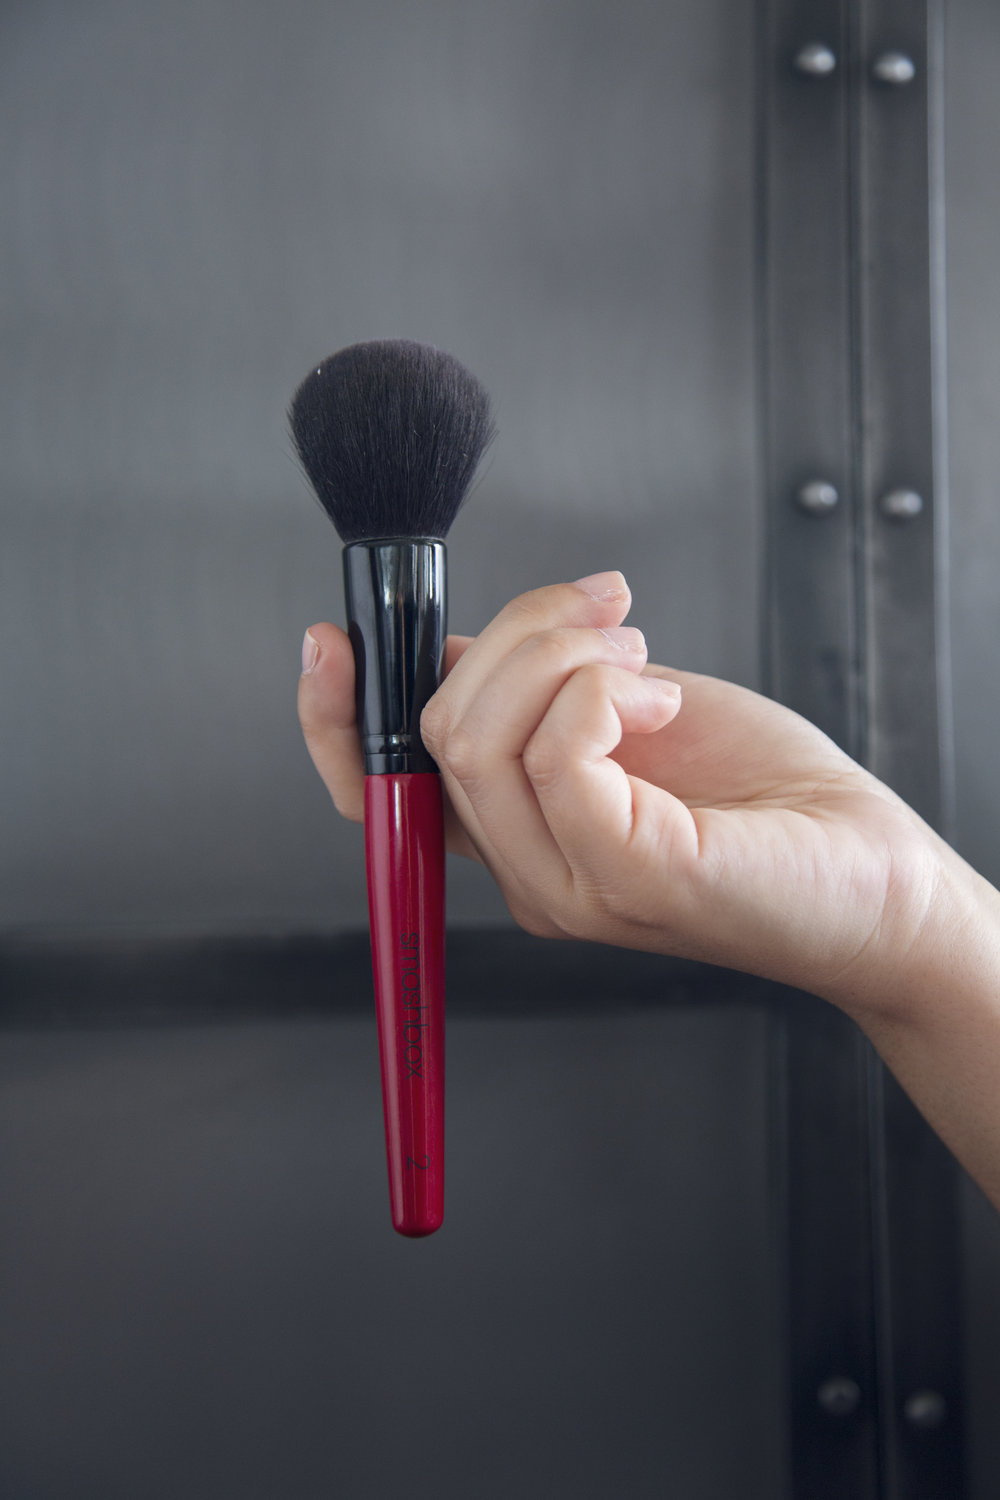 SMASHBOX favorite powder brush to set your makeup